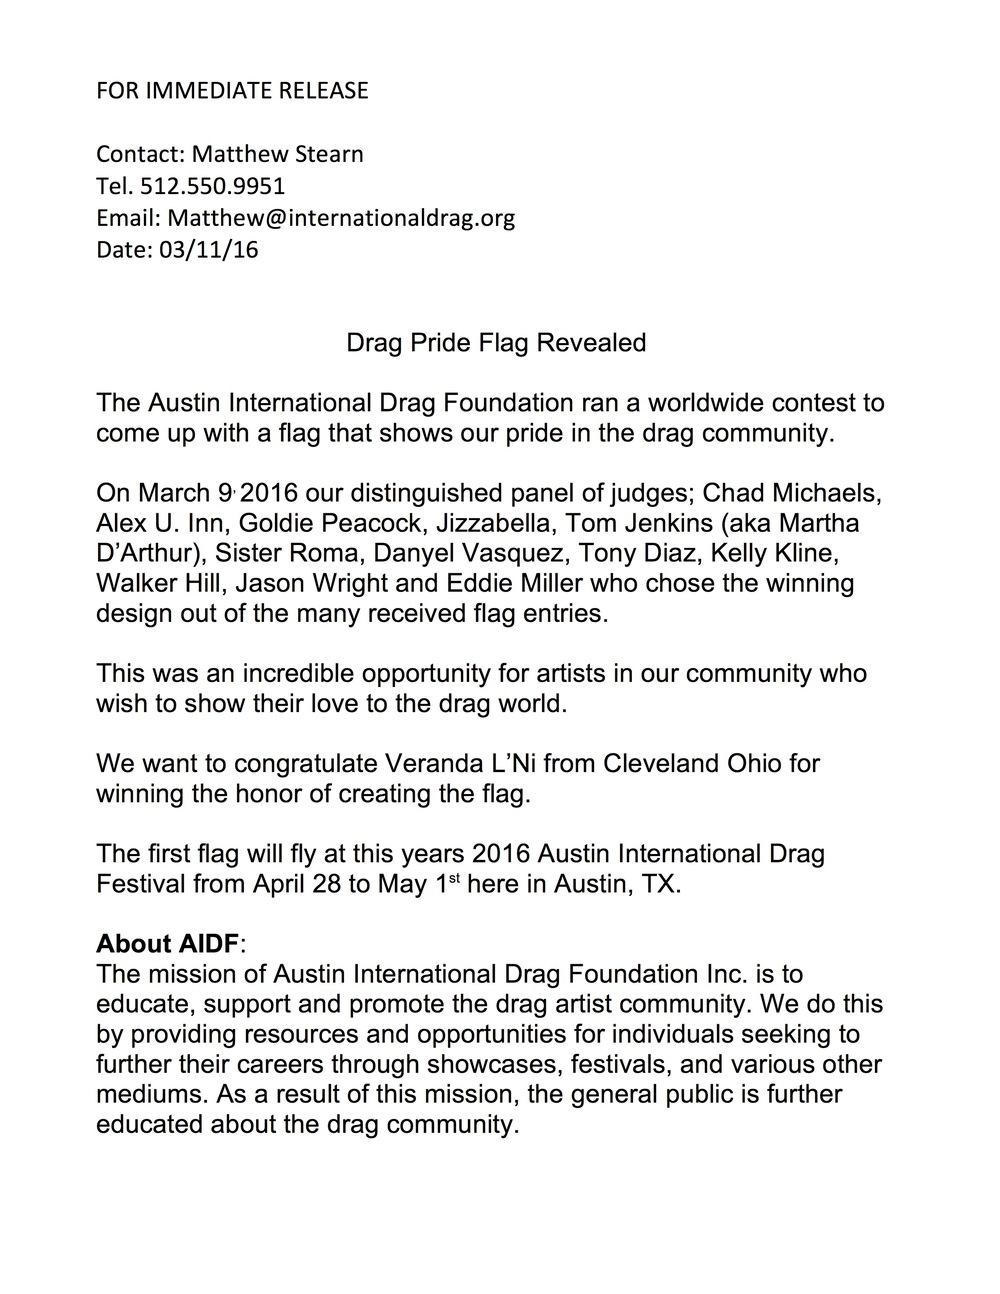 Press release from AIDF | March 11, 2016